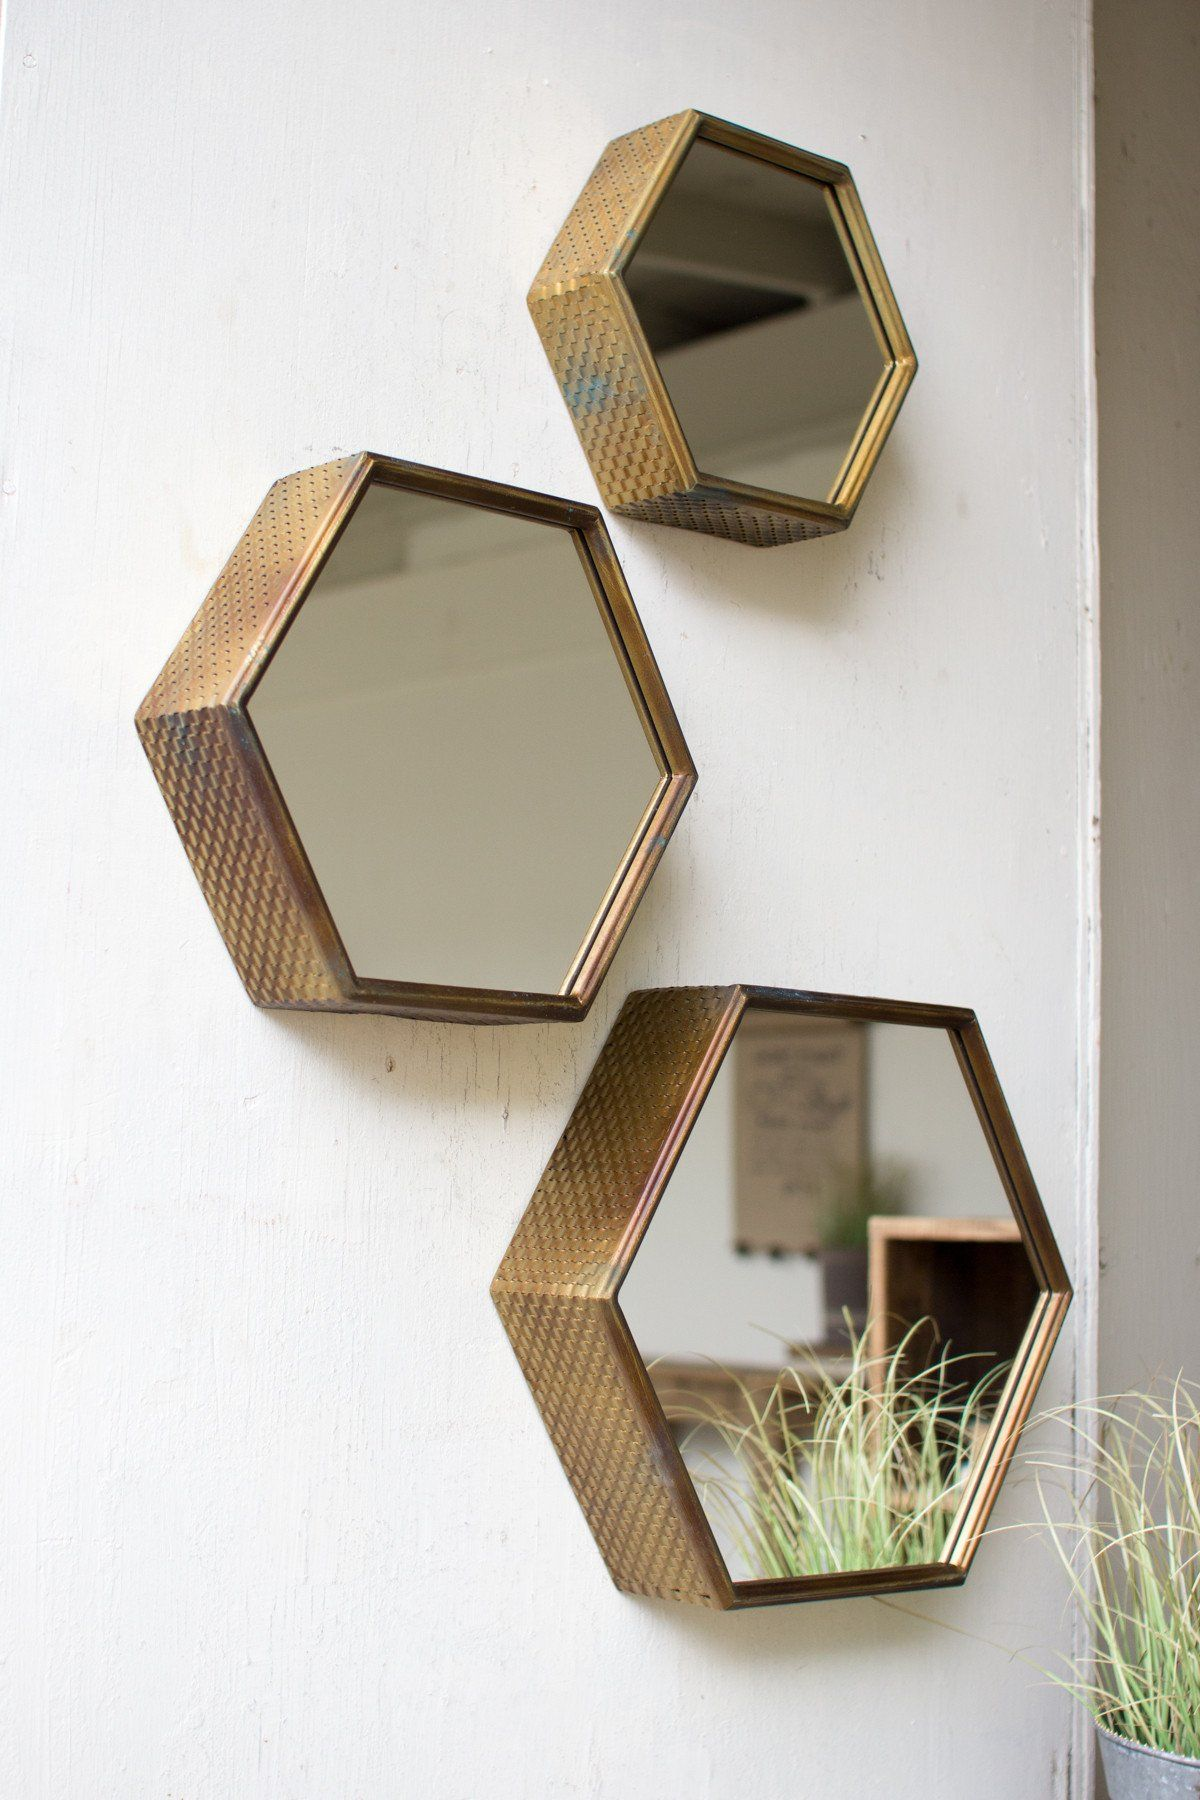 Do It Yourself Home Design: Kalalou Hexagon Mirrors With Antique Brass Finish